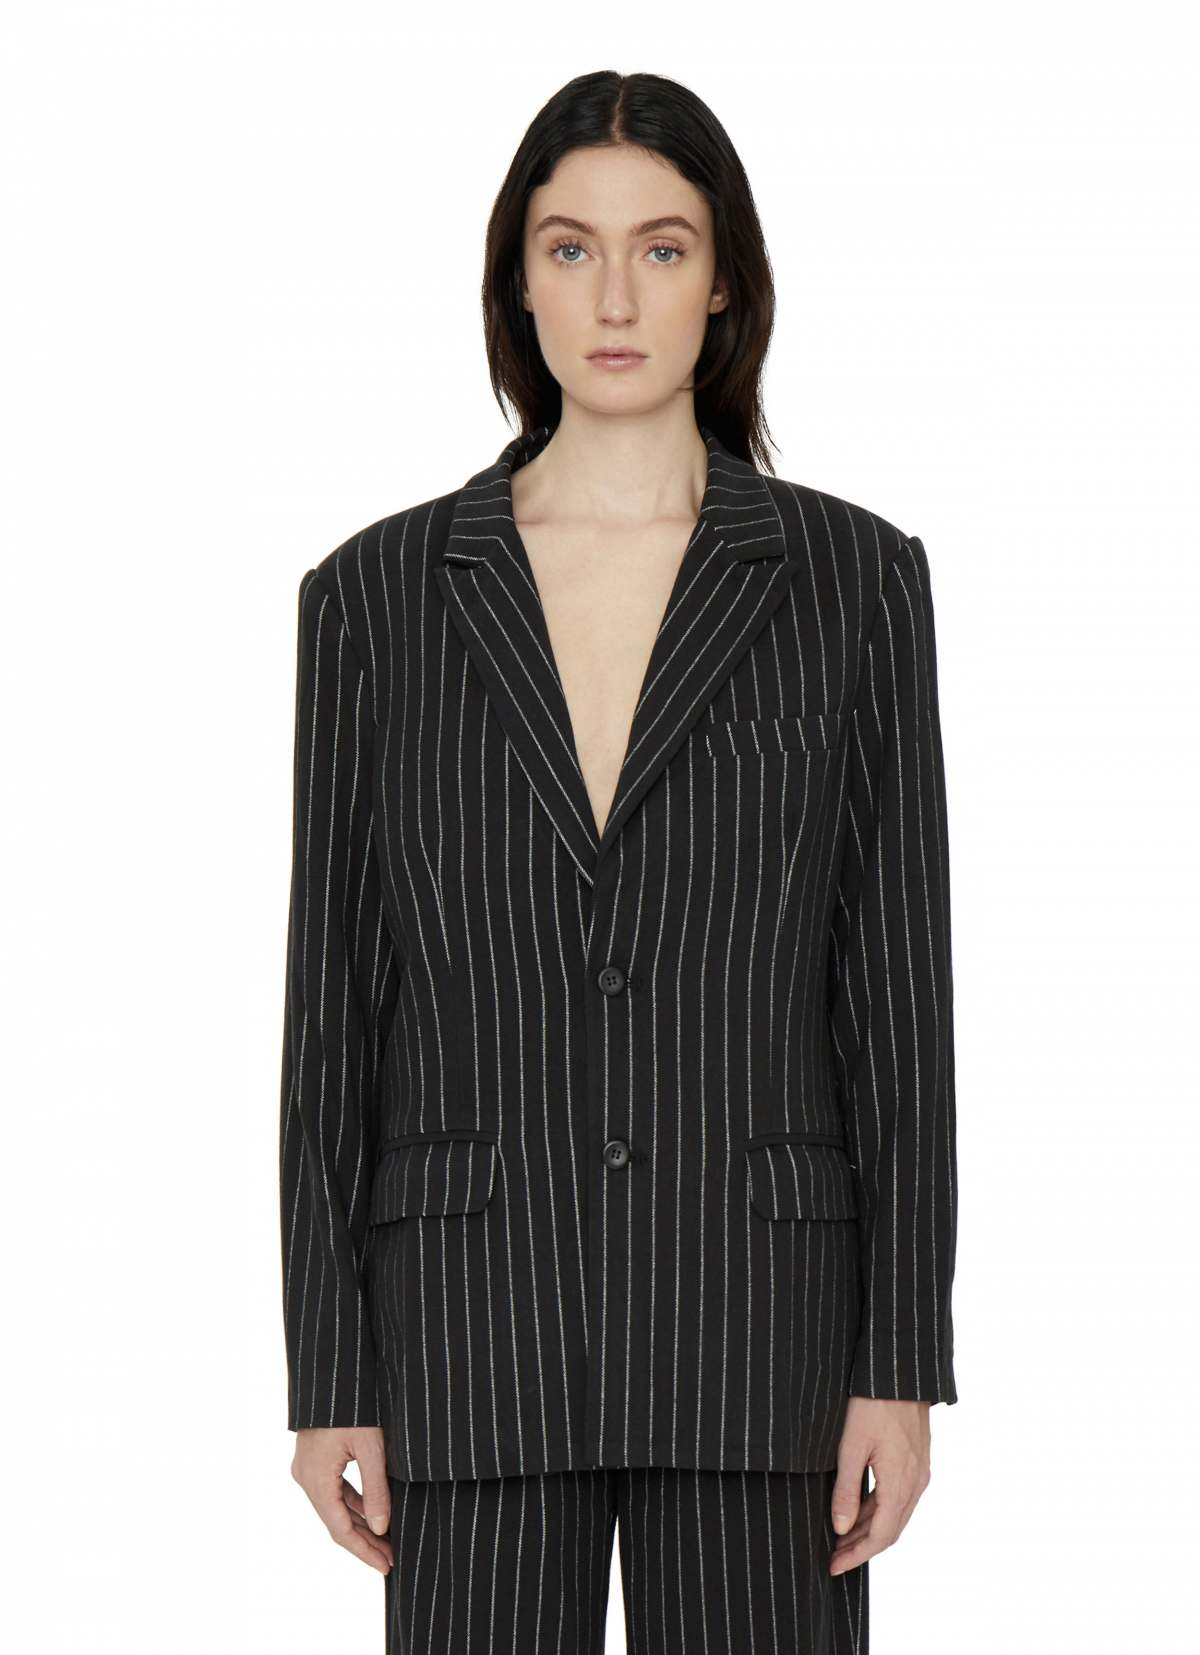 PINSTRIPE OVERSIZED BLAZER by Danielle Guizio, available on danielleguiziony.com for $468 Kendall Jenner Outerwear SIMILAR PRODUCT